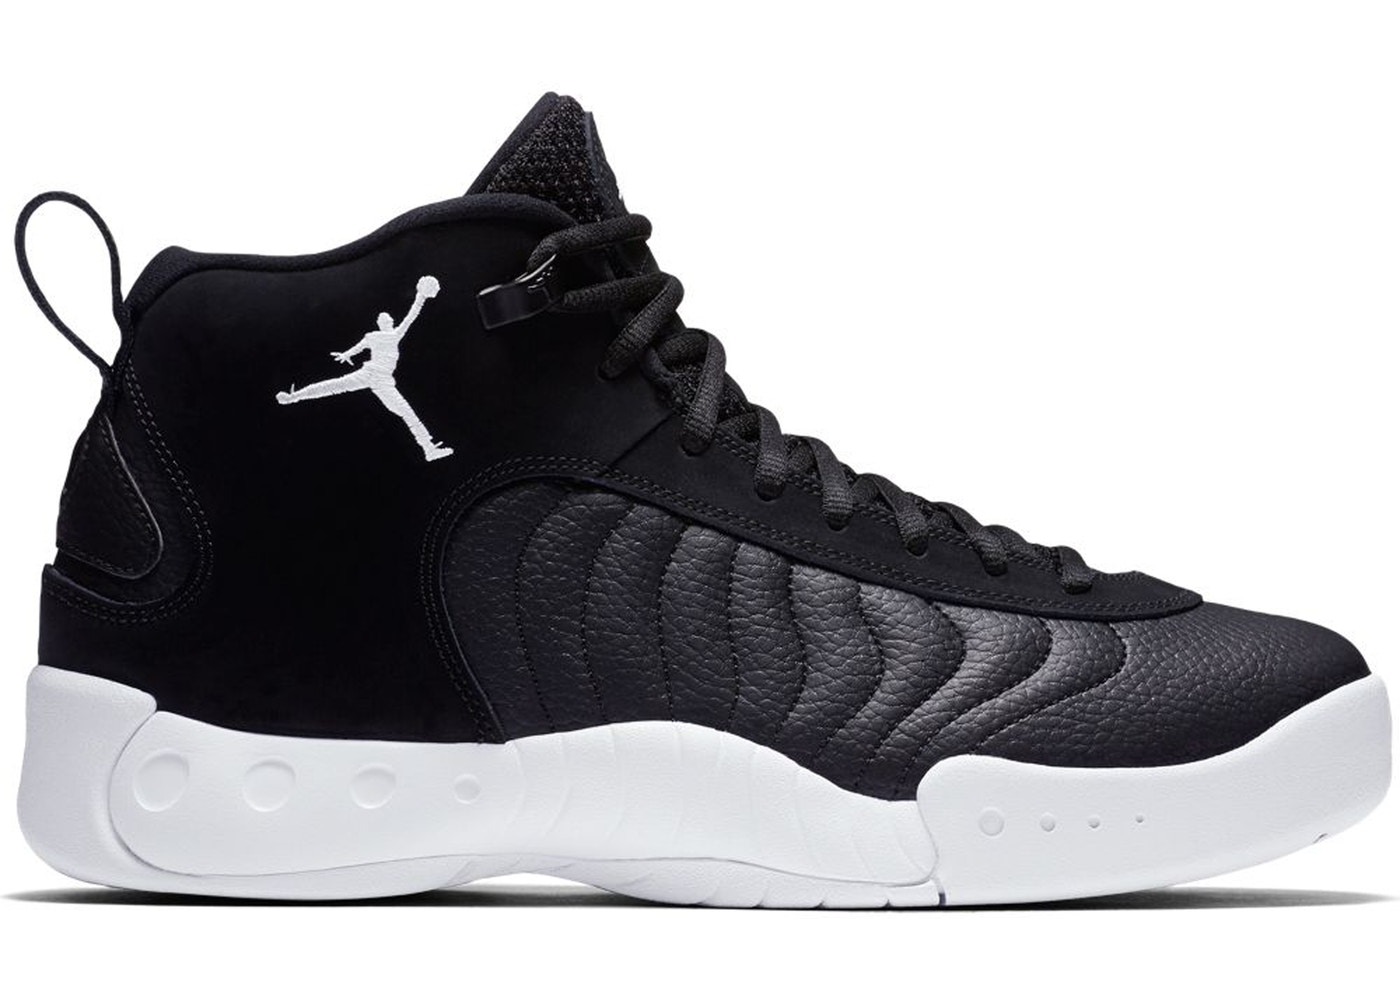 hot sale online be442 dfecb Jordan Jumpman Pro Black White